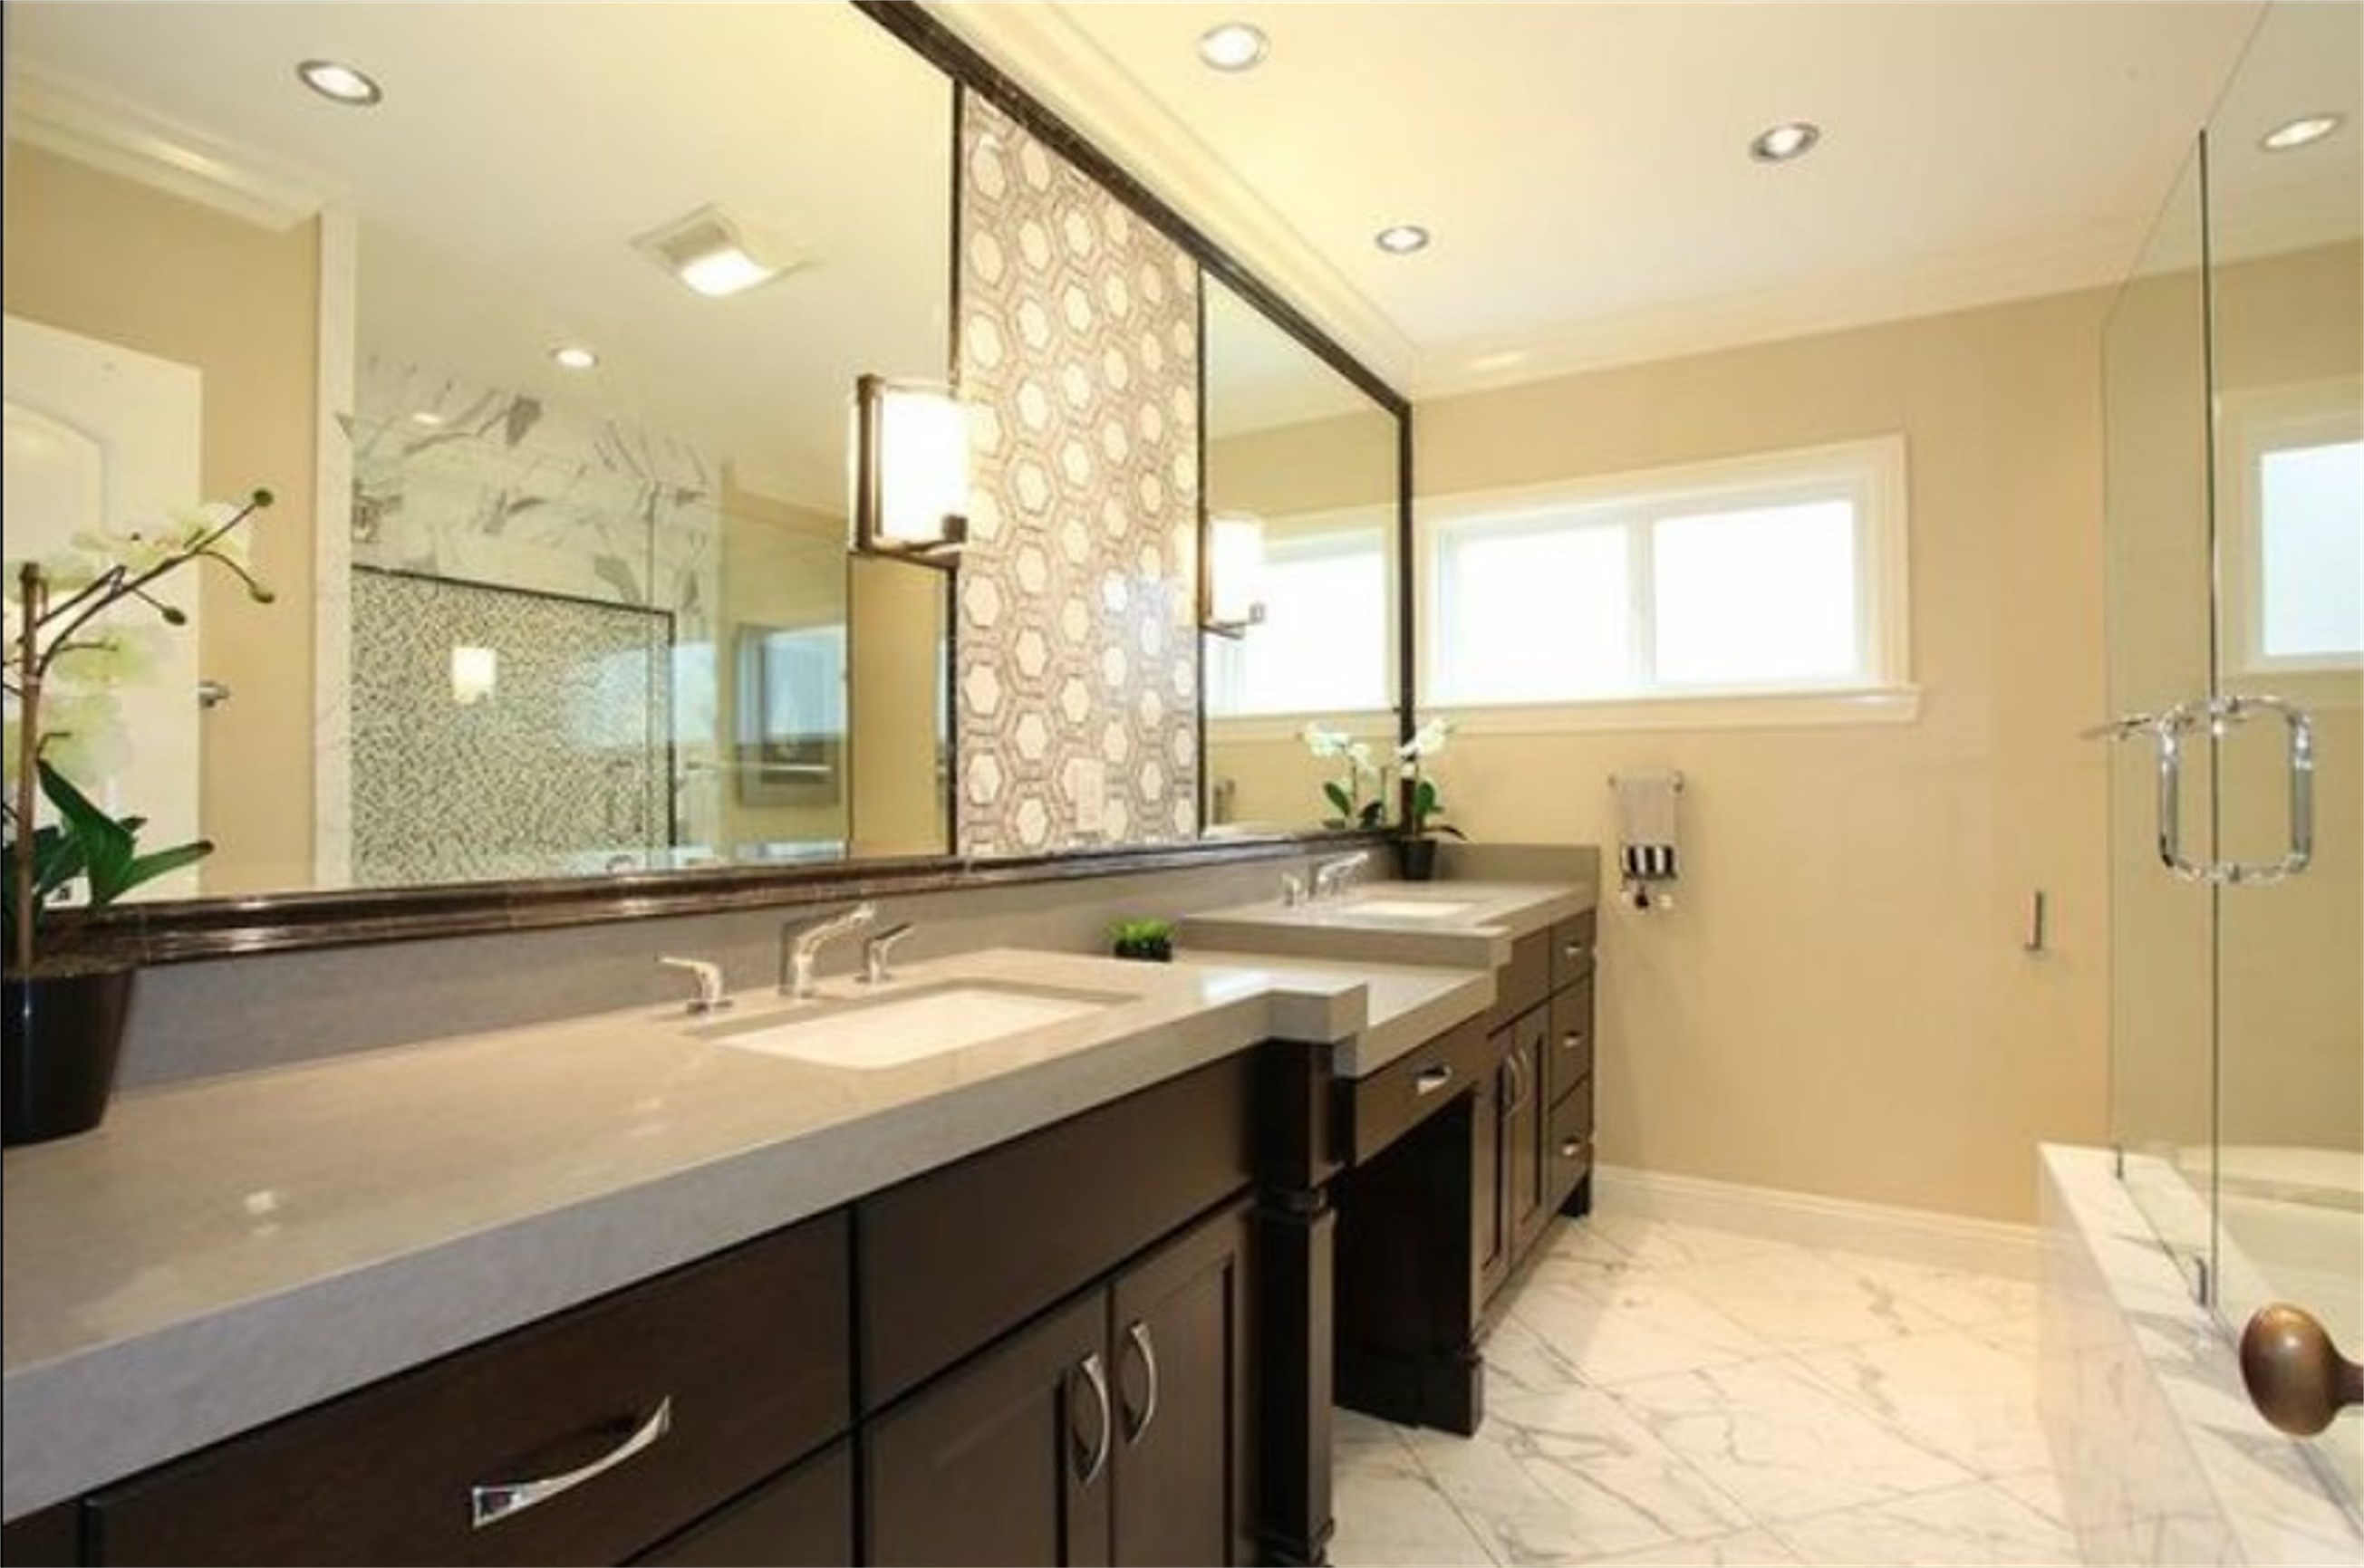 Here Are A Few Attributes That Make Quartz Countertops An Excellent Choice For The Bathroom